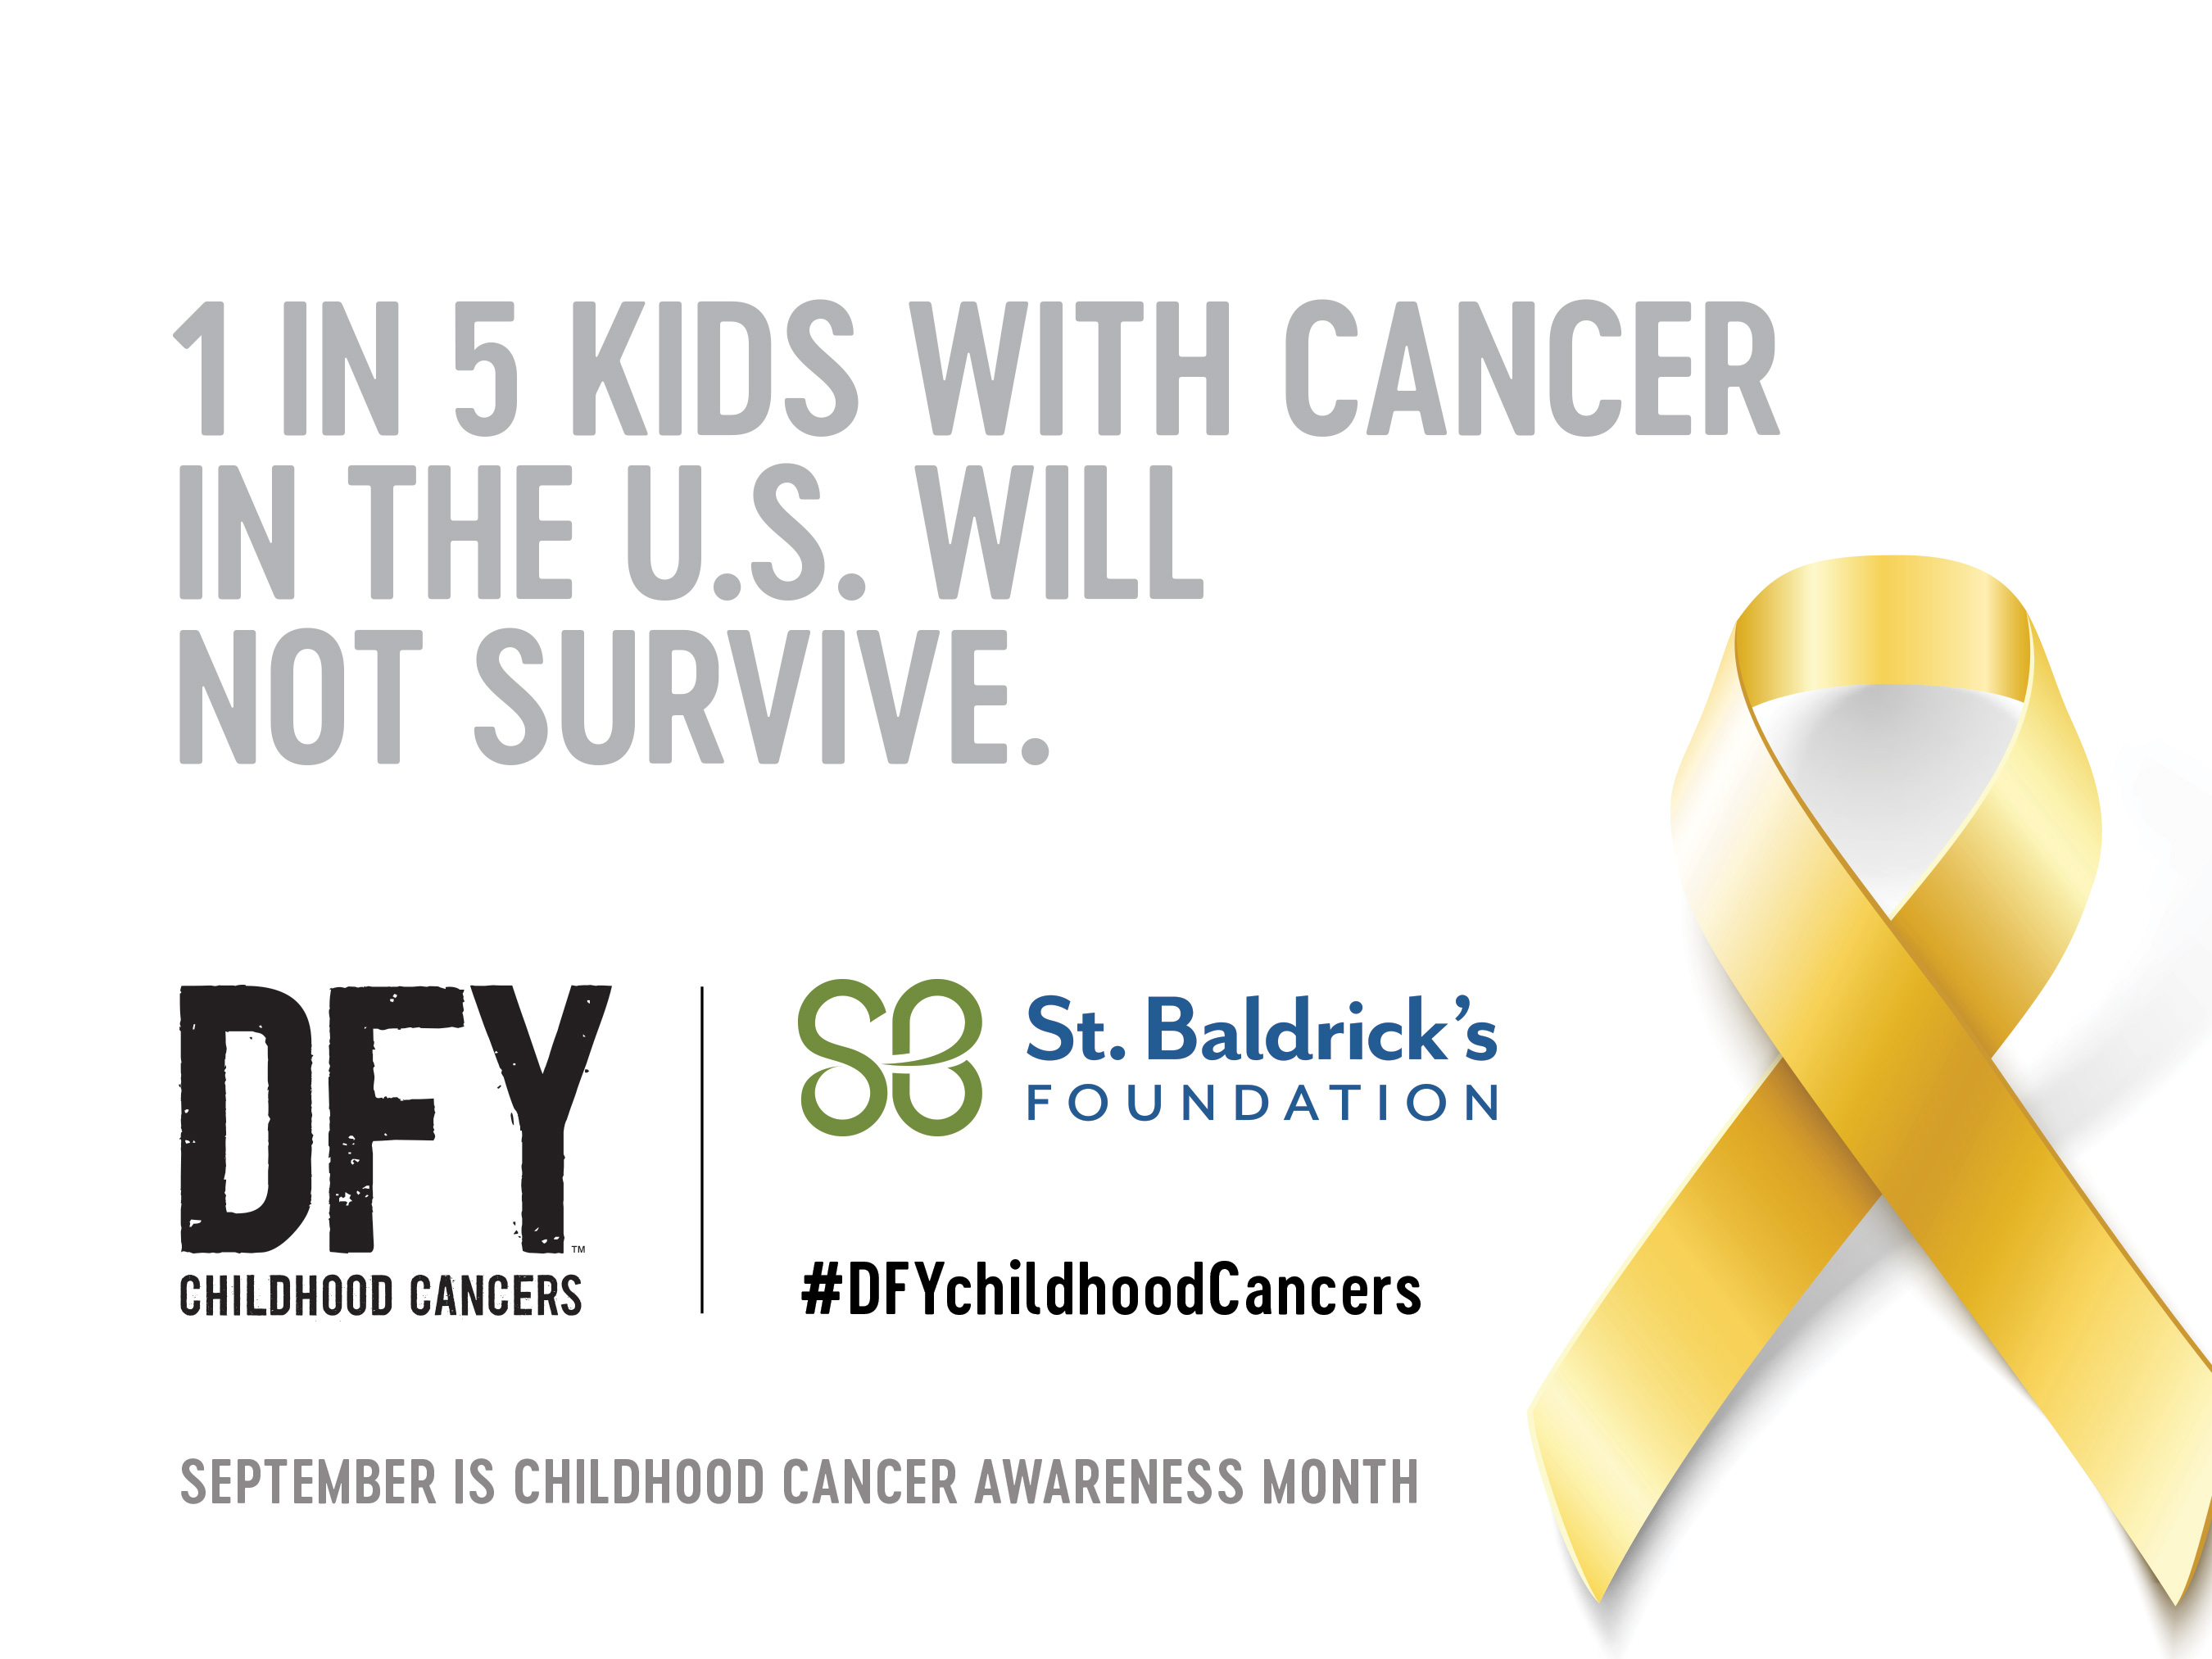 Share this image on social media using the hashtag #DFYchildhoodCancers and #StBaldricks.